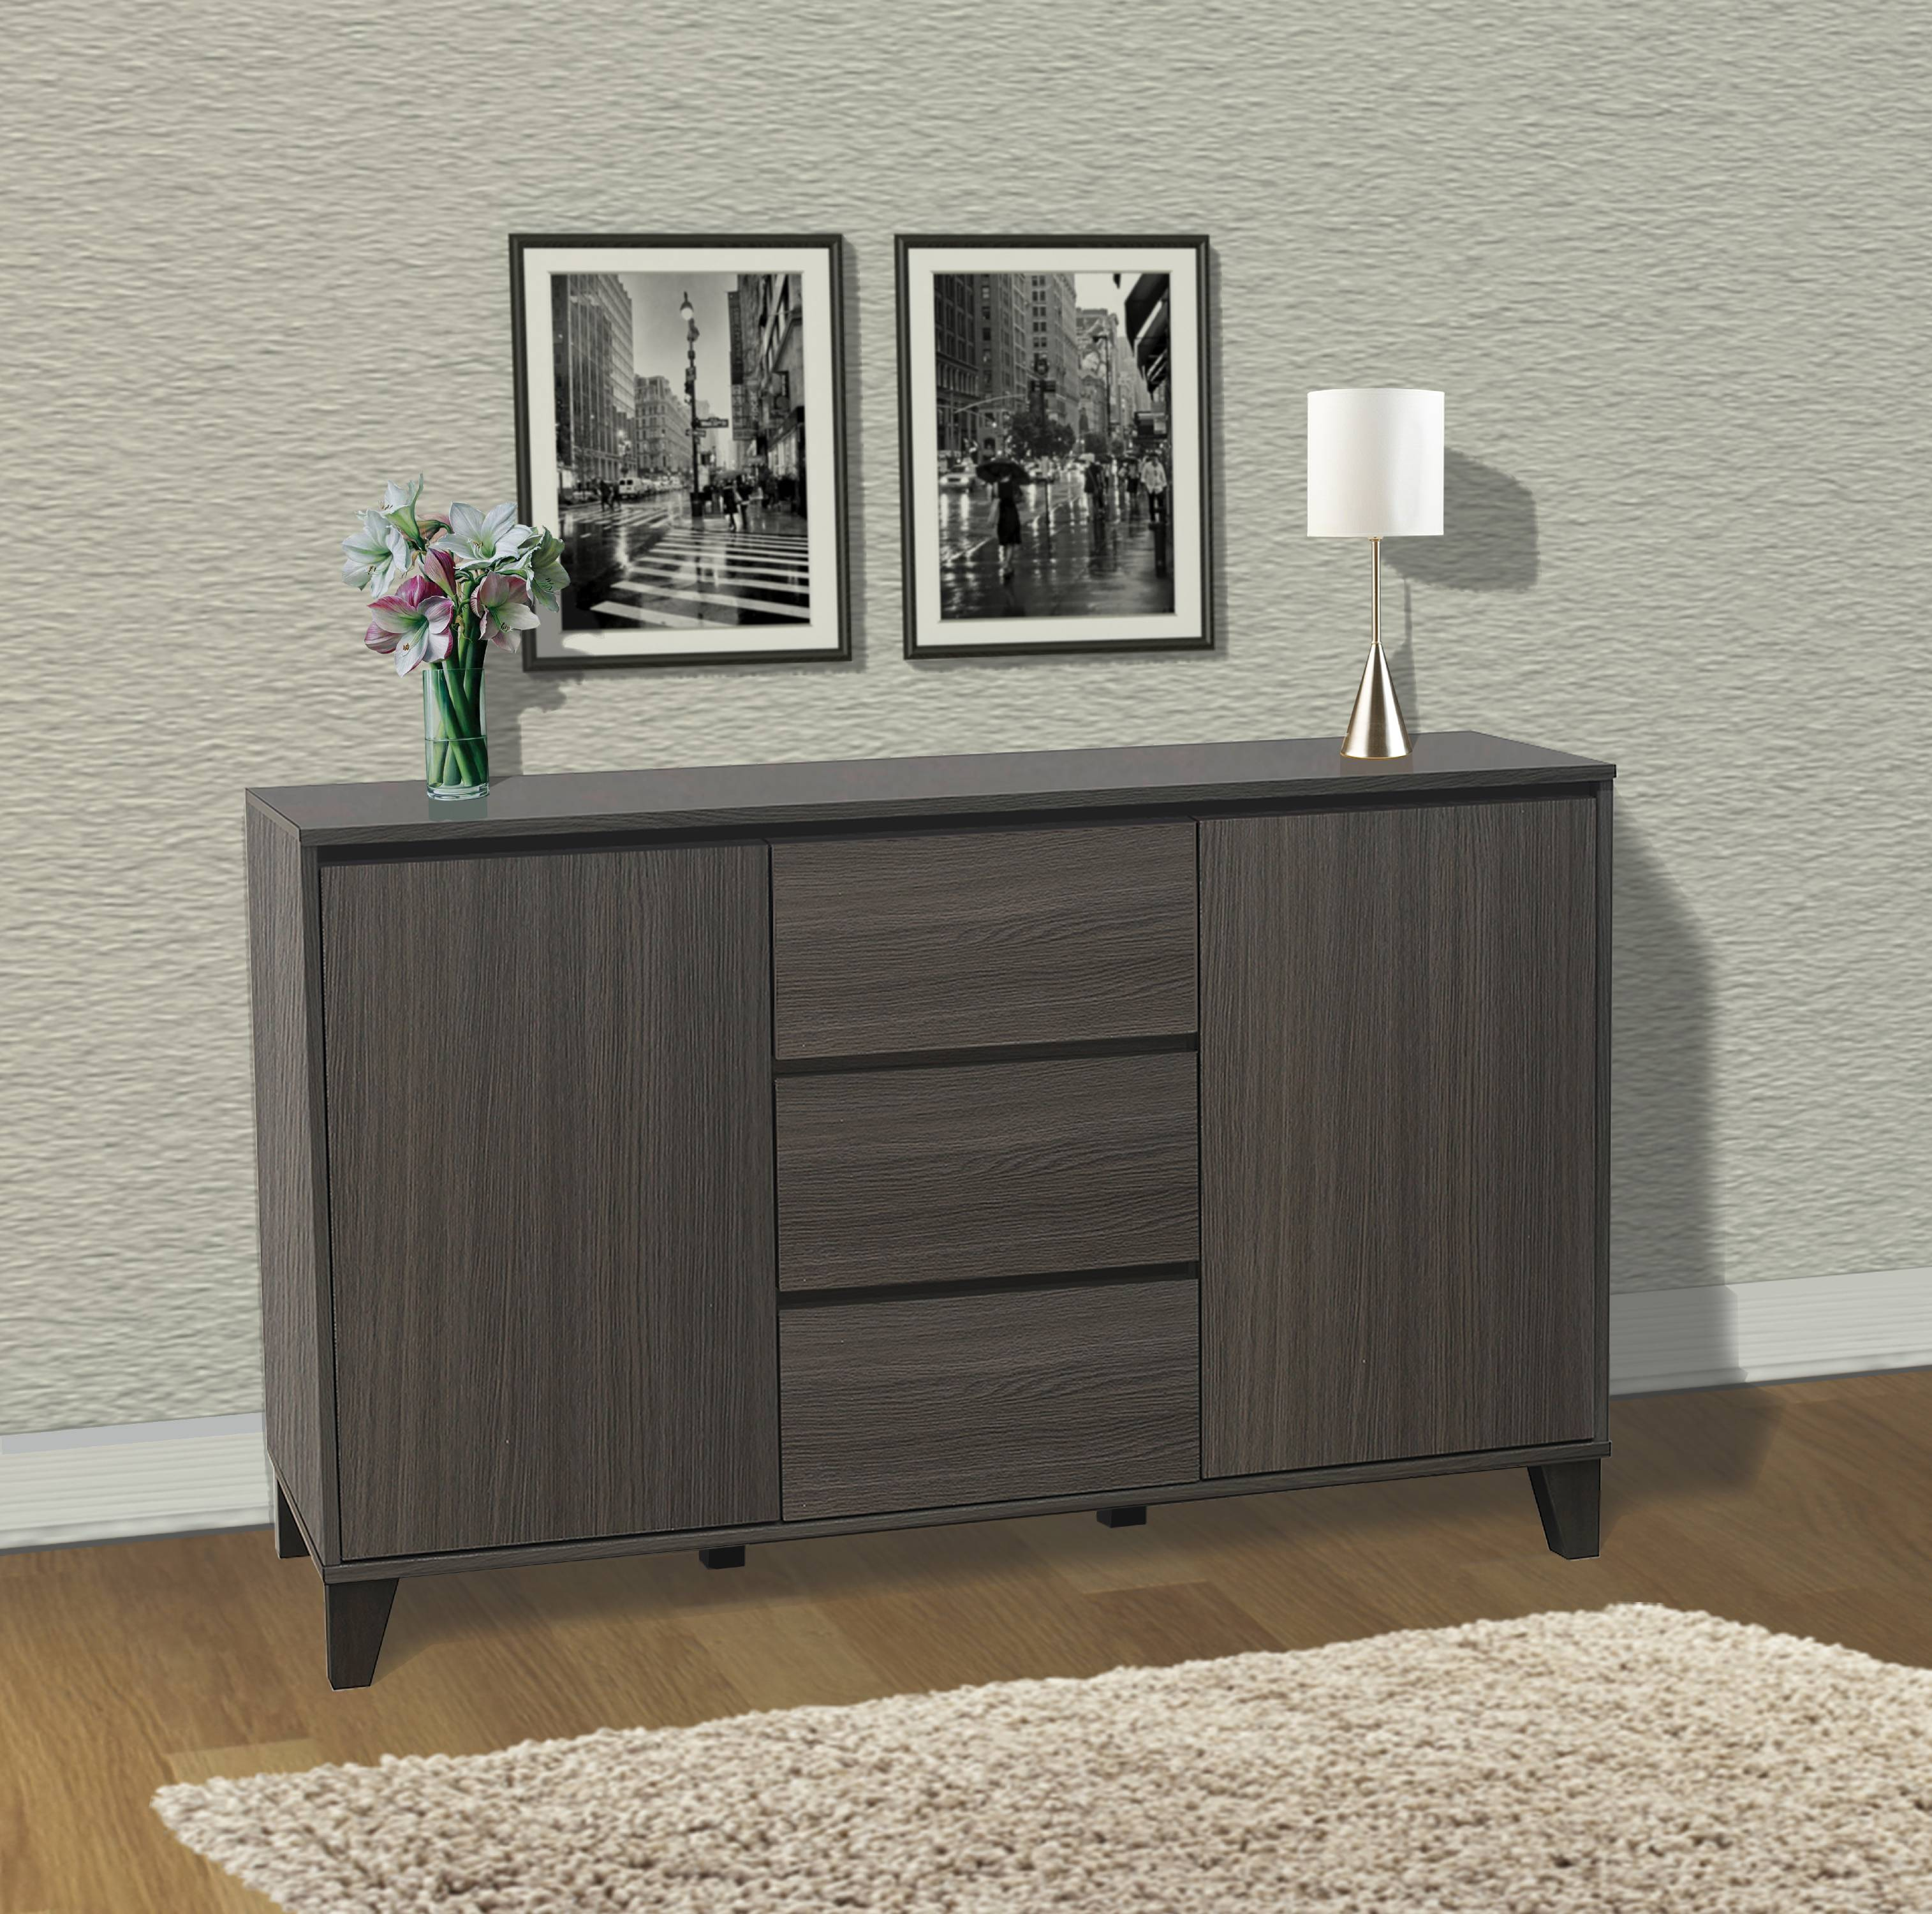 Anitra Oak Gray Wood Modern Buffet Server 2 Door Cabinet Console Table With 3 Storage Drawers & Adjustable Shelves by Pilaster Designs